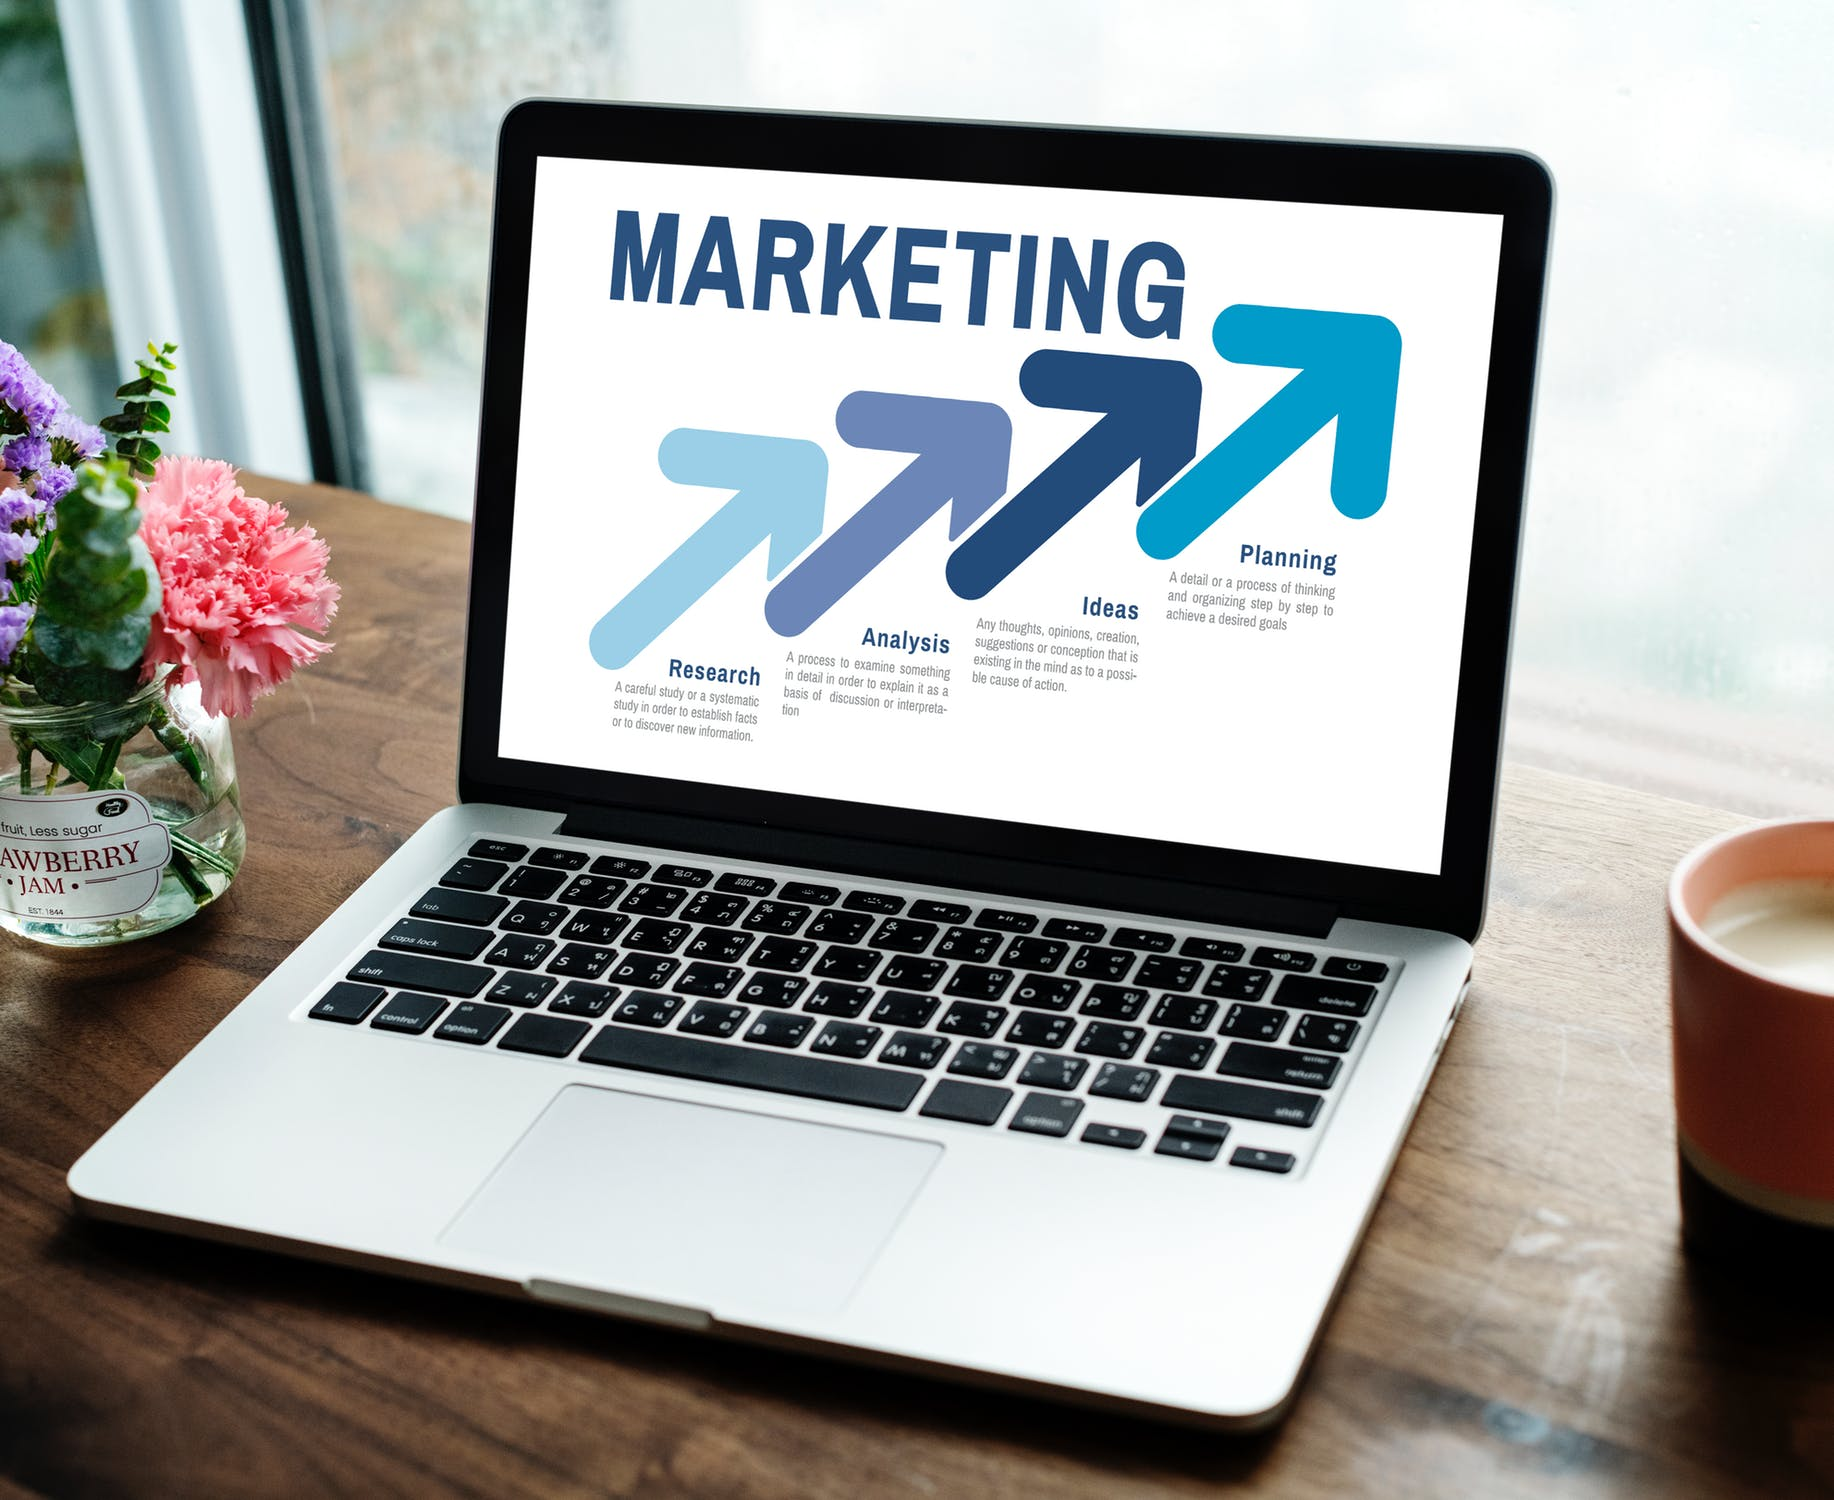 Build your online presence with Alastair's digital marketing and web development services!